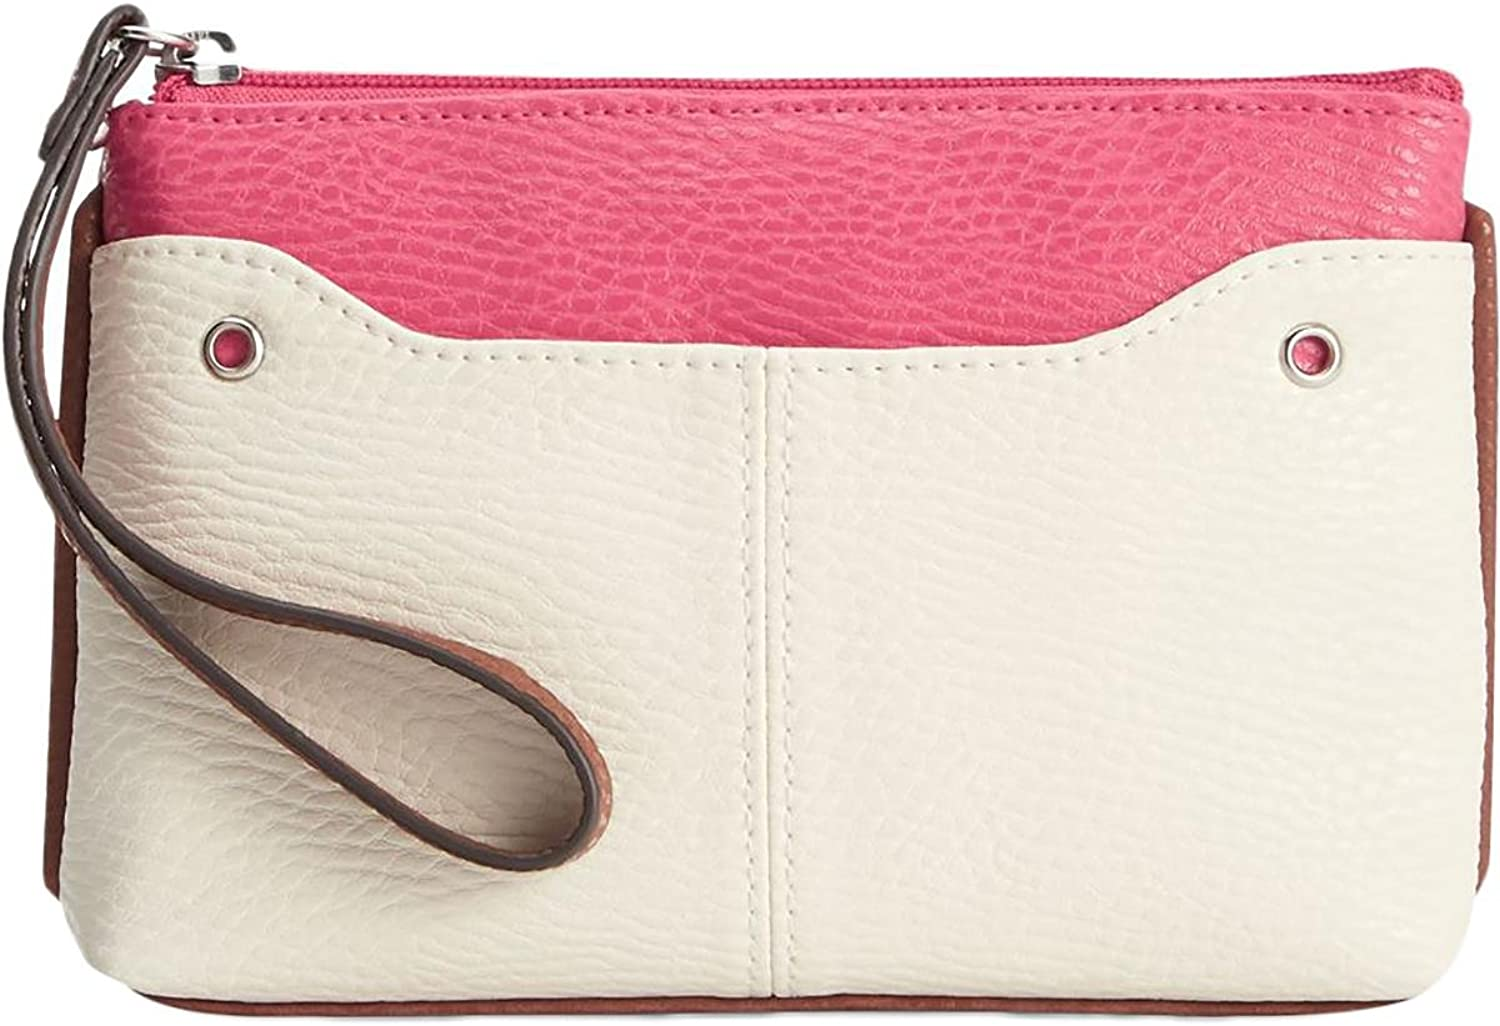 Style & Co. Womens Palmer Faux Leather colorblock Wristlet Wallet Pink O S